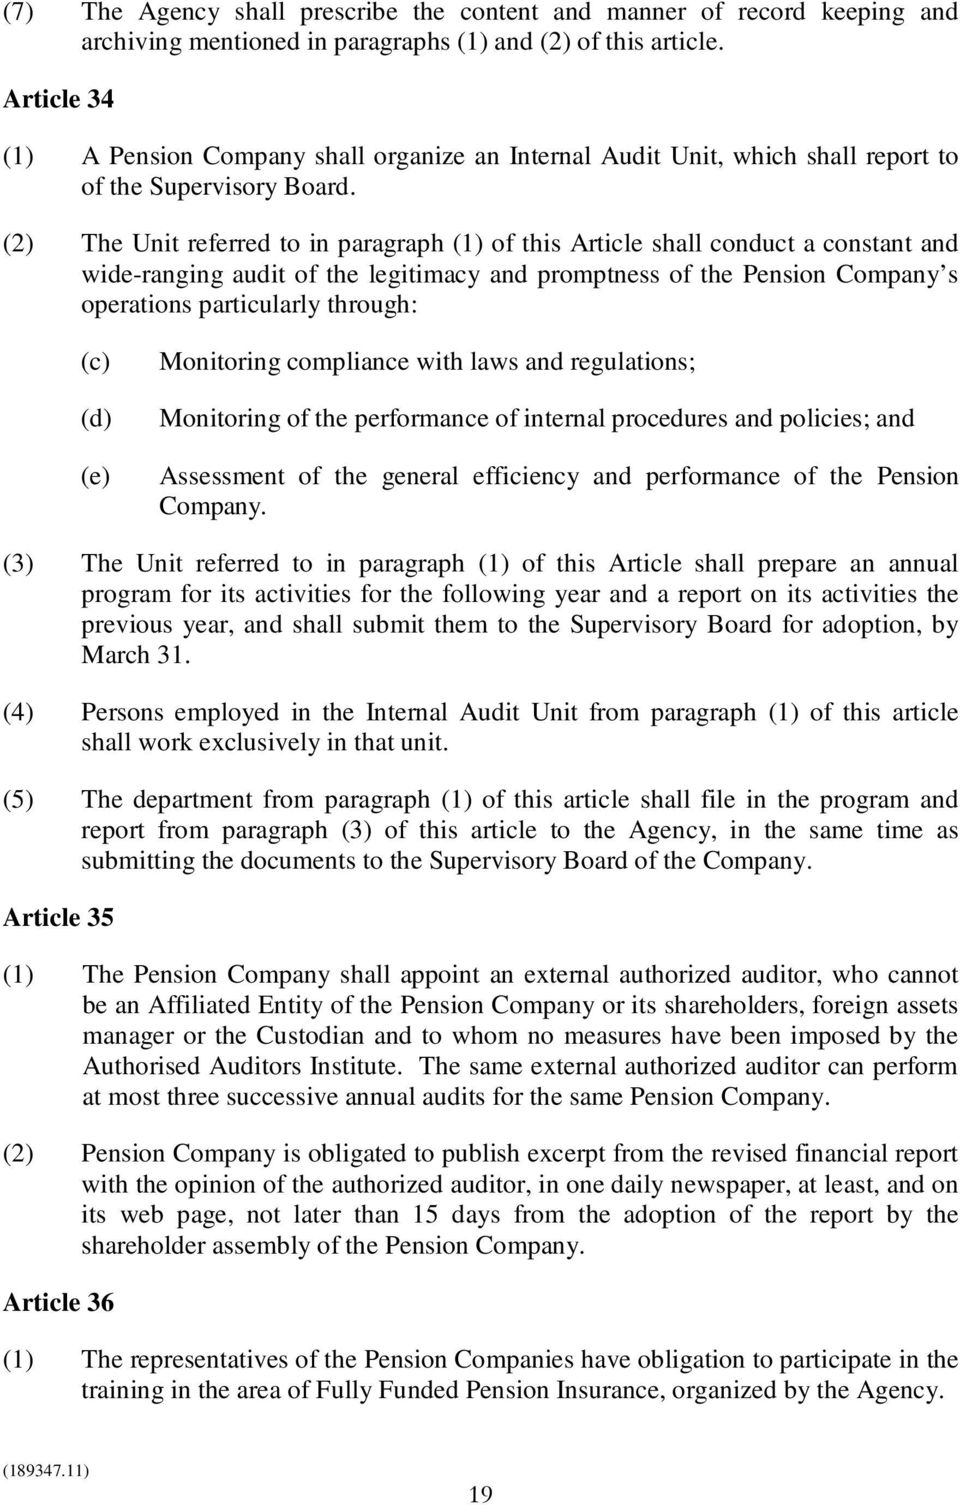 (2) The Unit referred to in paragraph (1) of this Article shall conduct a constant and wide-ranging audit of the legitimacy and promptness of the Pension Company s operations particularly through: